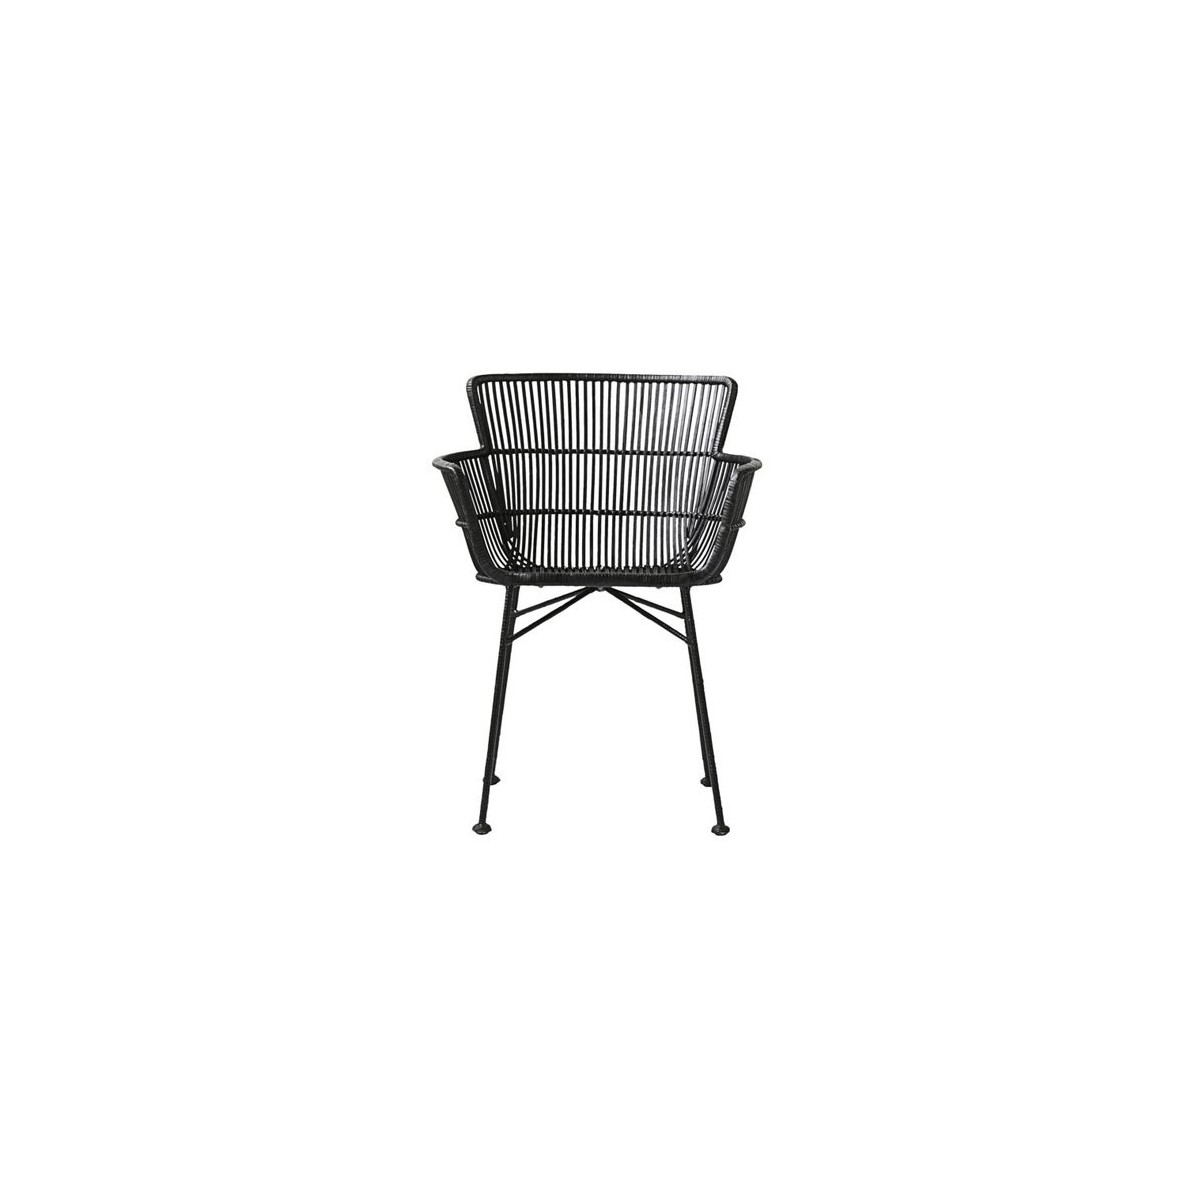 black rattan chair steel with tablet arm cuun house doctor